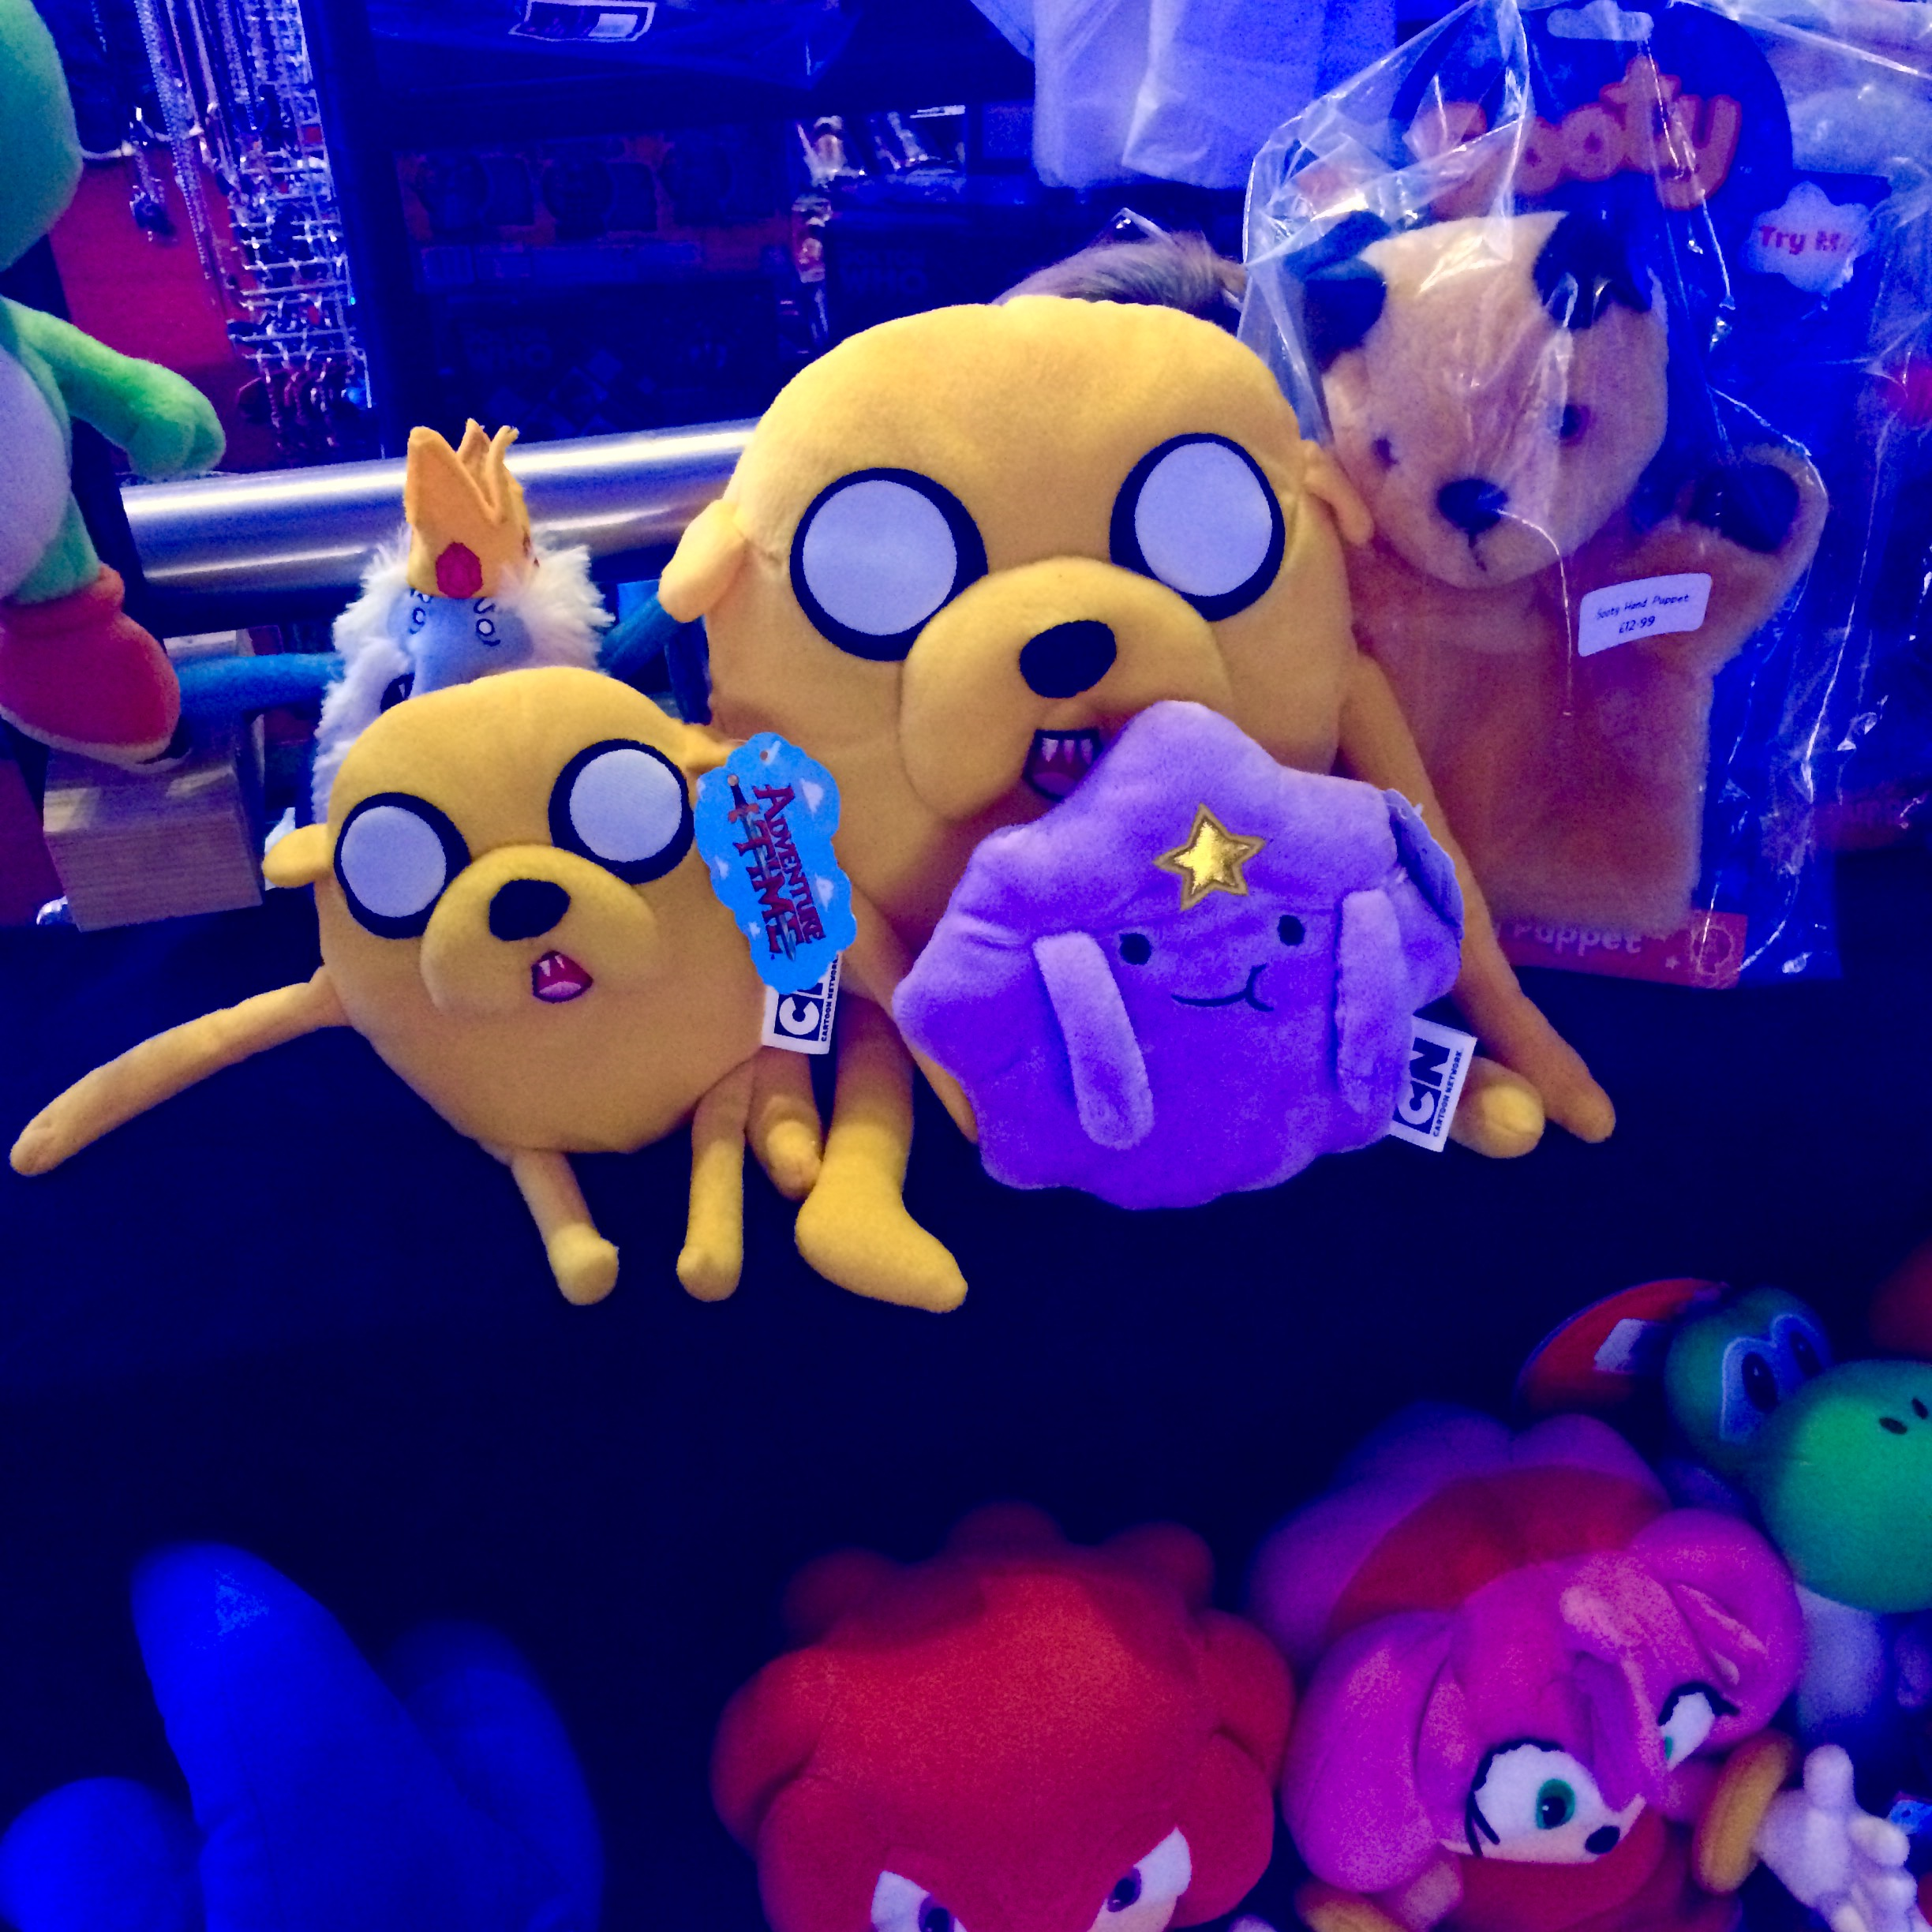 Jakes and LPS from Adventure Time